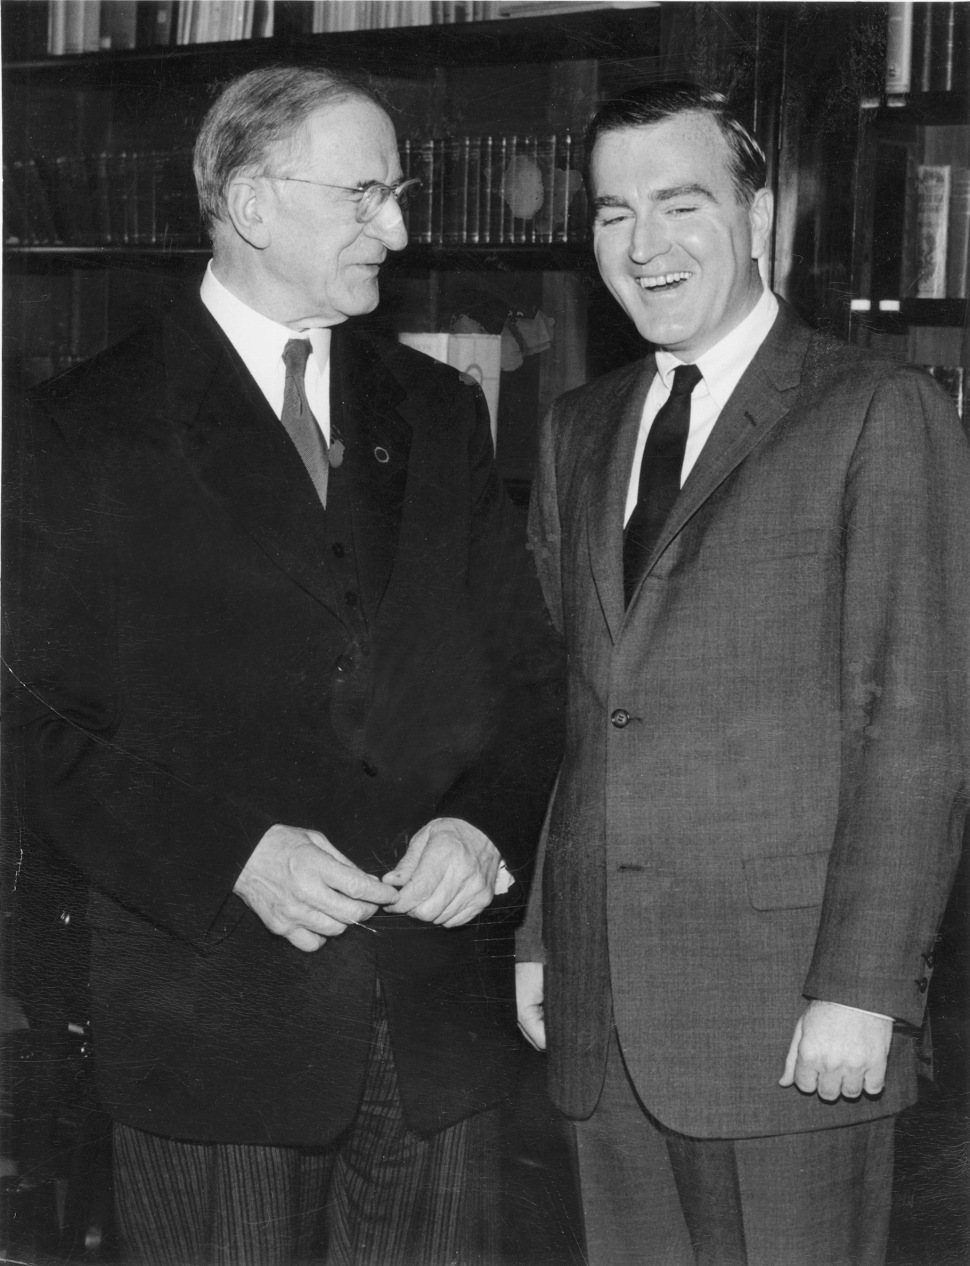 Eamon de Valera. (1882 –1975). One of the dominant political figures in 20th century Ireland. His political career spanned over half a century (1917 to 1973). Served multiple terms as head of government and head of state. Shown (circa 1959) with former US Congressman Neil Gallagher whose term in office (1959-1973) coincided with deValera's term as President of Ireland.